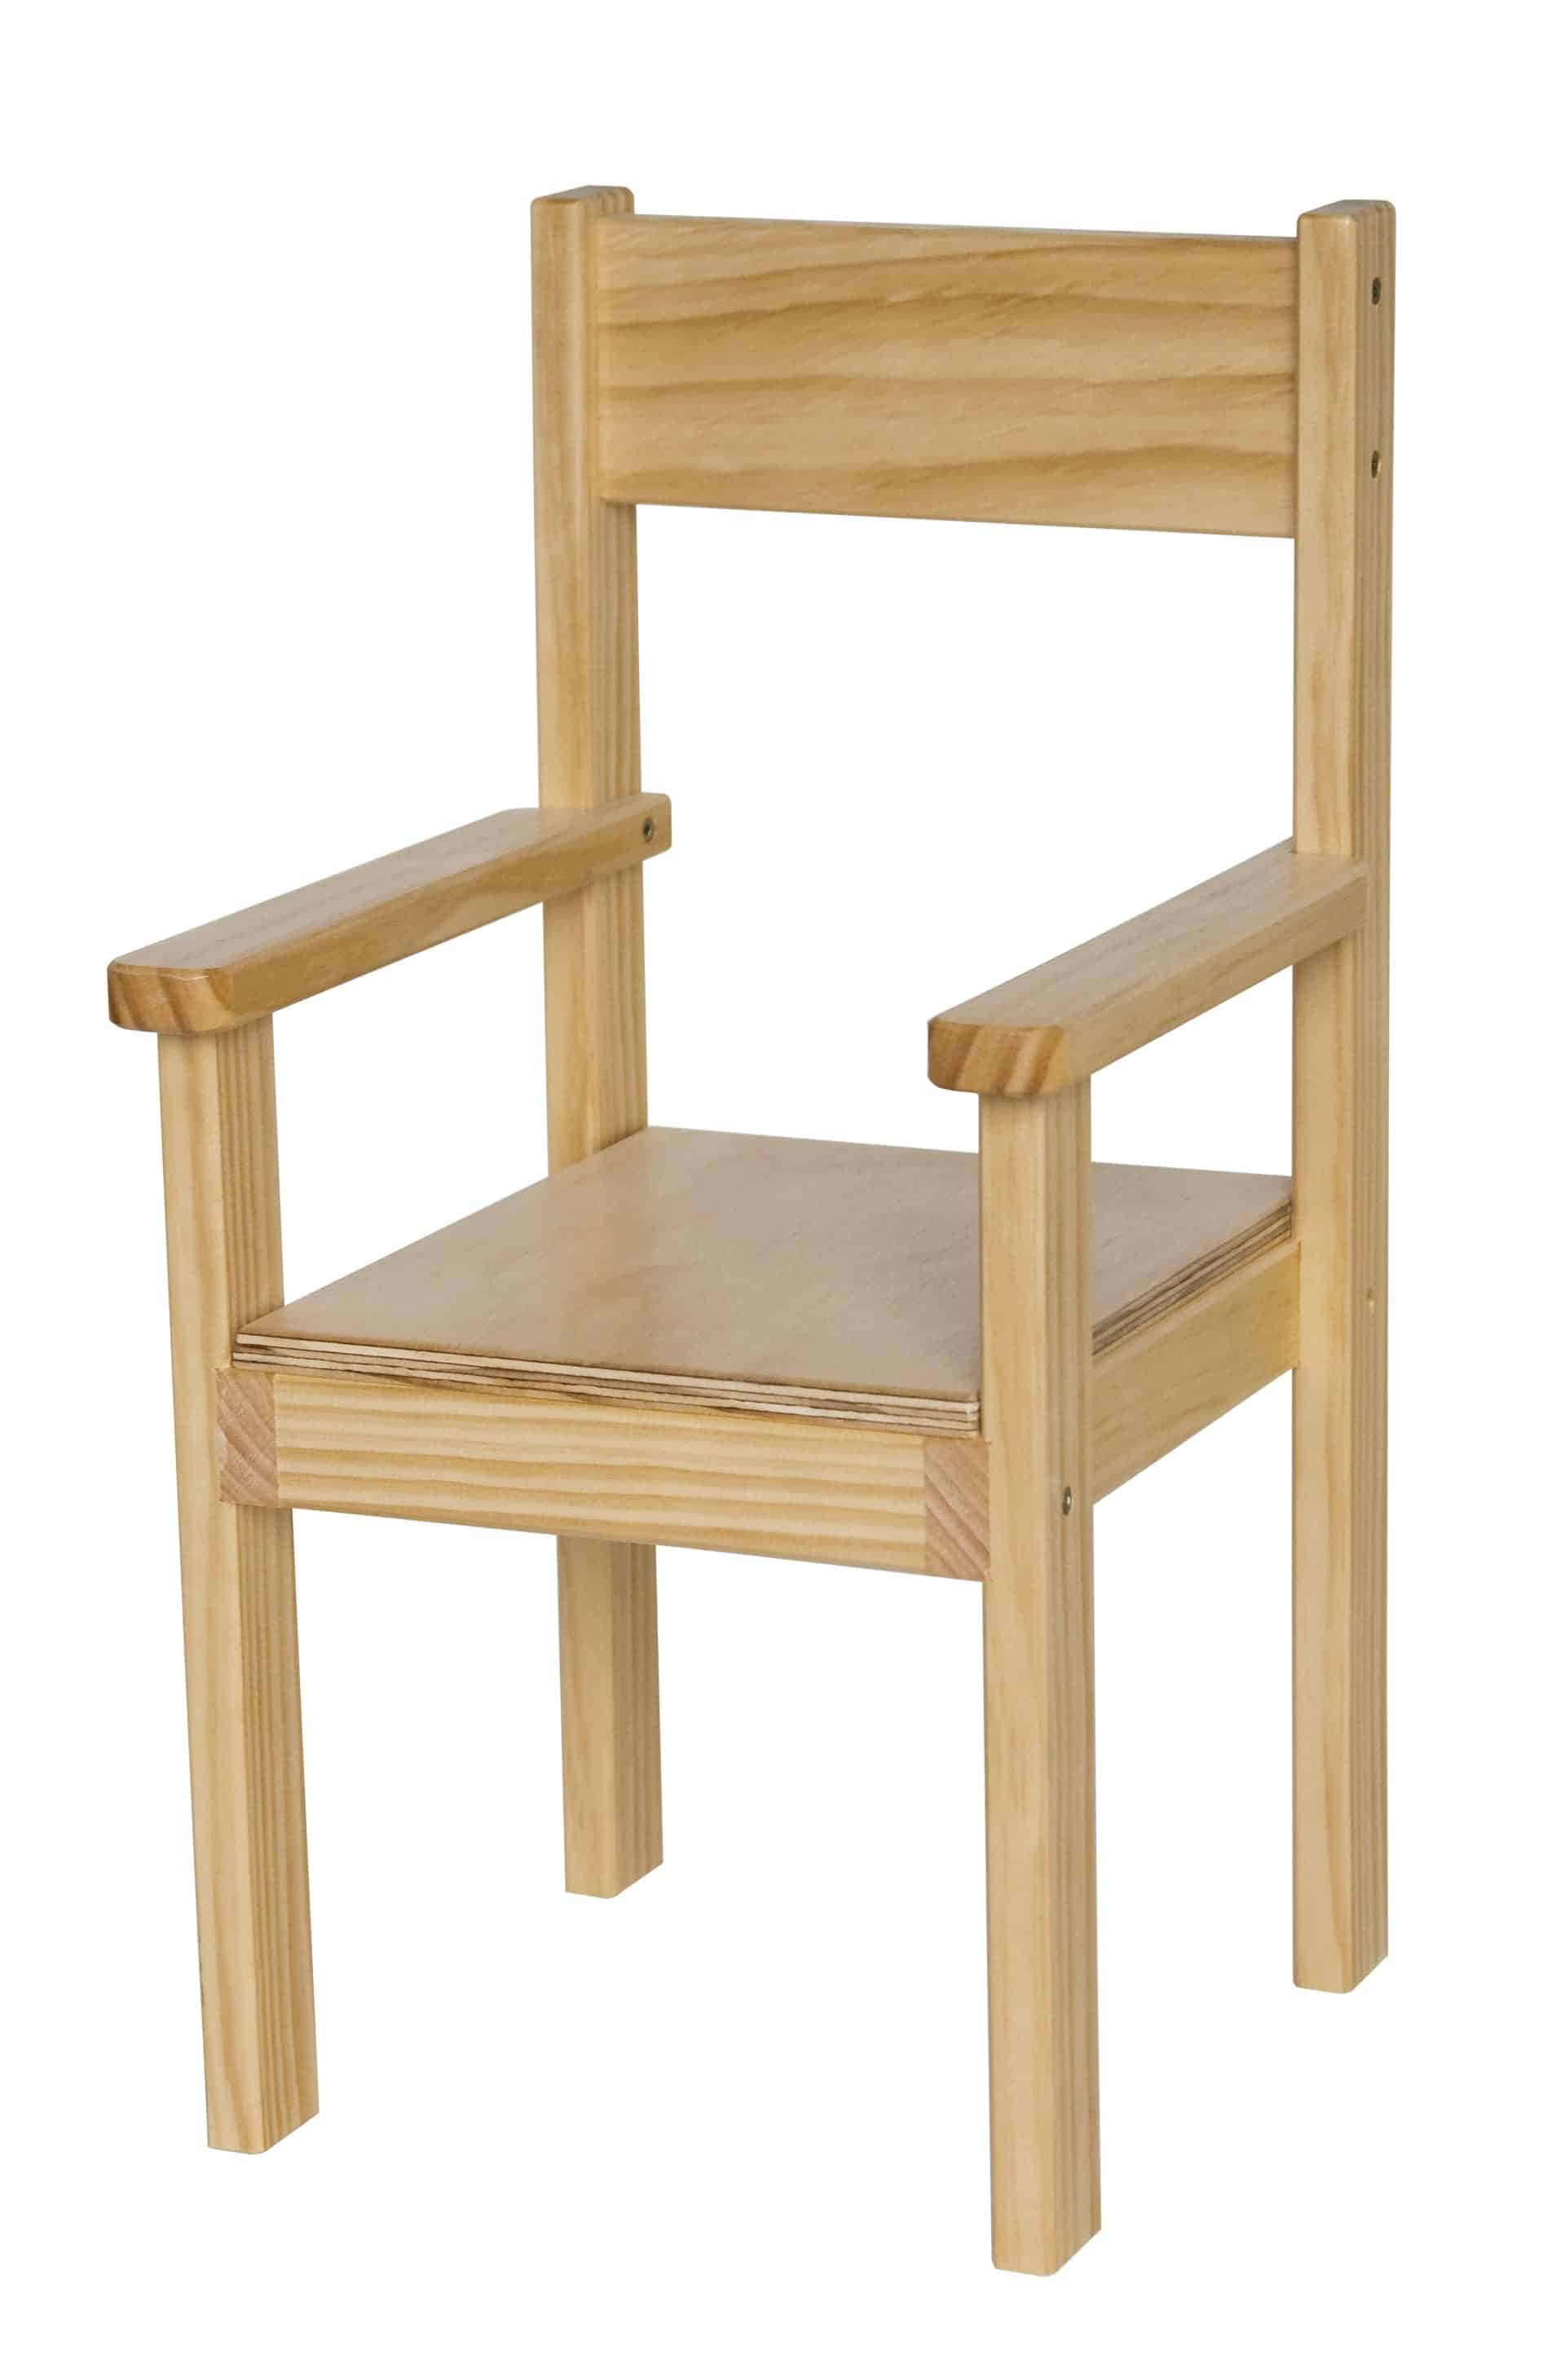 wooden chair with arms for toddler best bean bag chairs toddlers su185 3d products